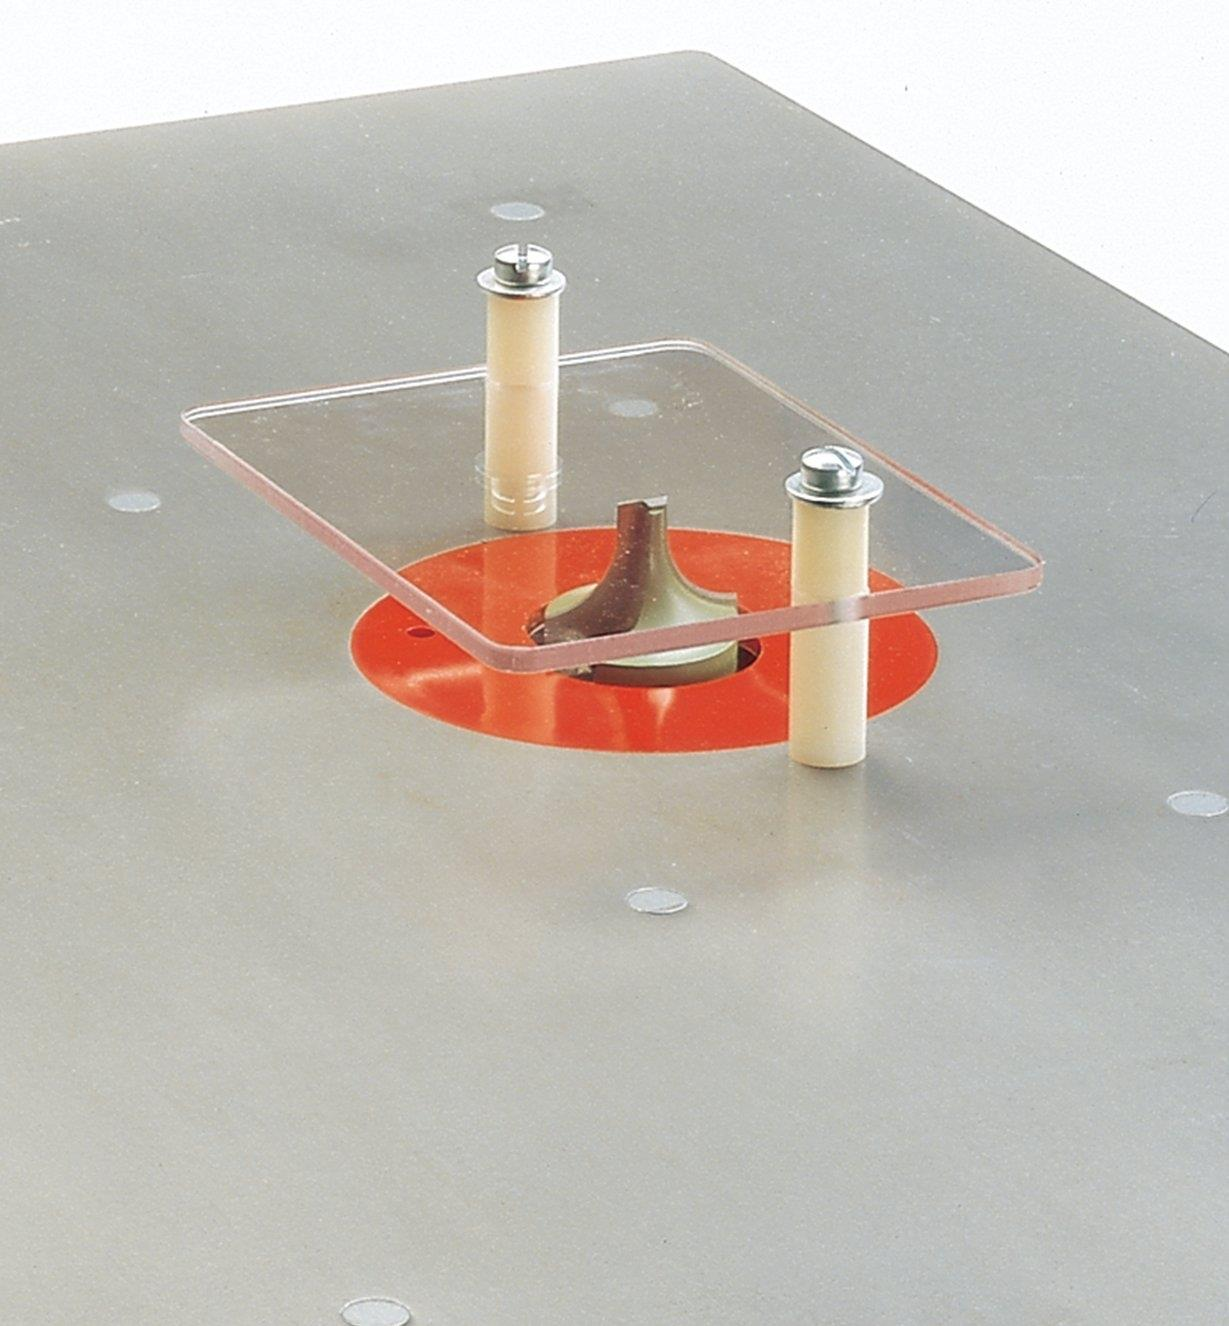 05J2305 - Table-Mount Safety Shield